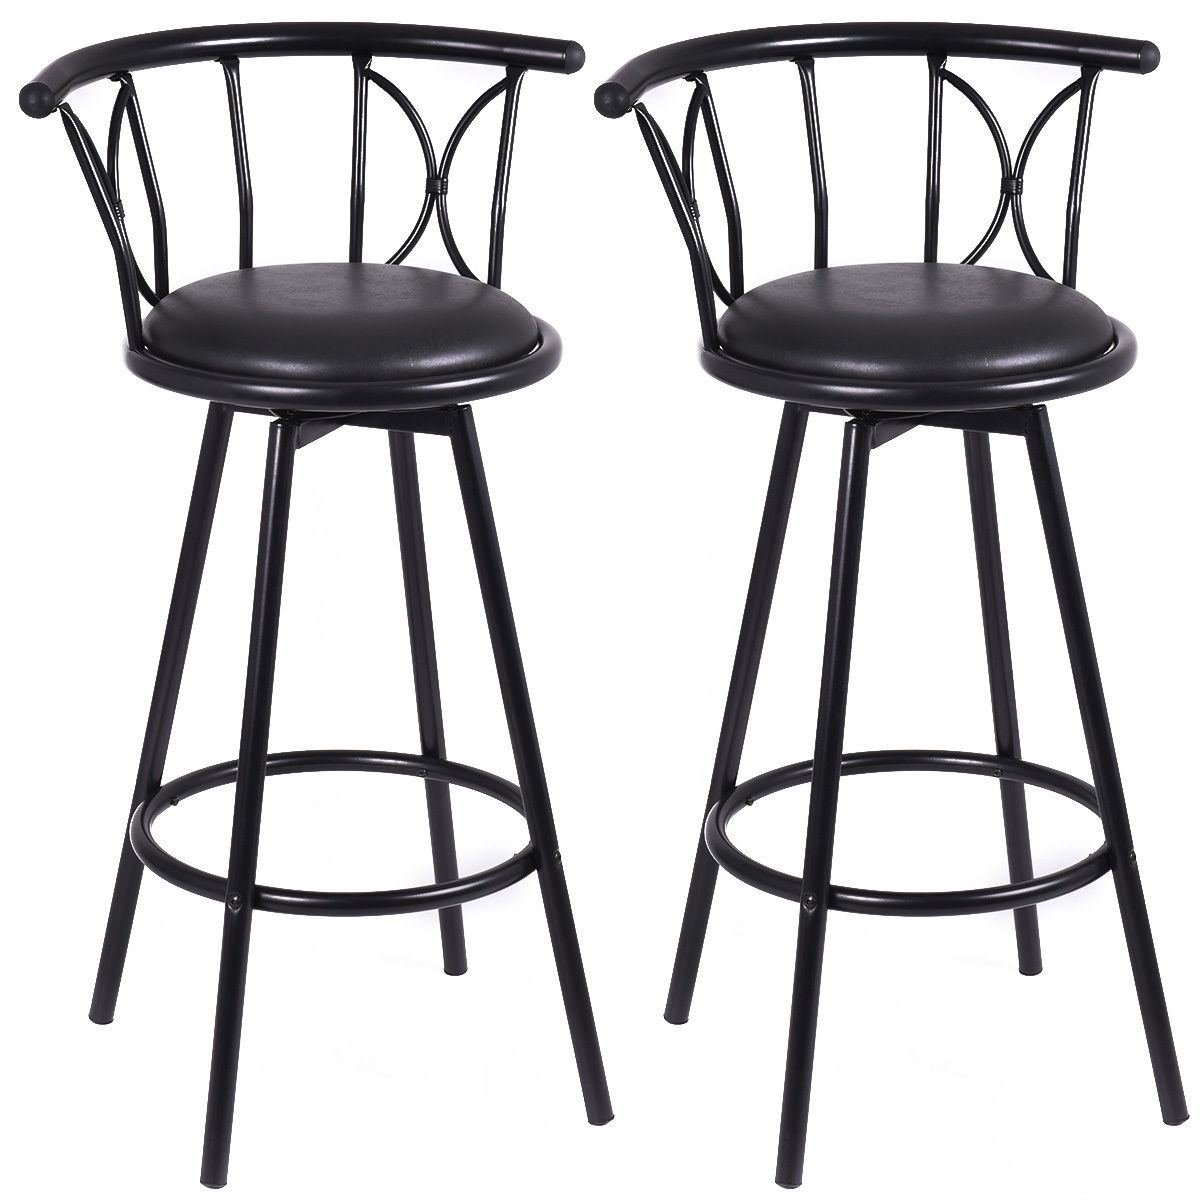 MasterPanel - Set of 2 Black Barstools Modern Swivel Rotatable Chairs Steel Counter Height #TP3255